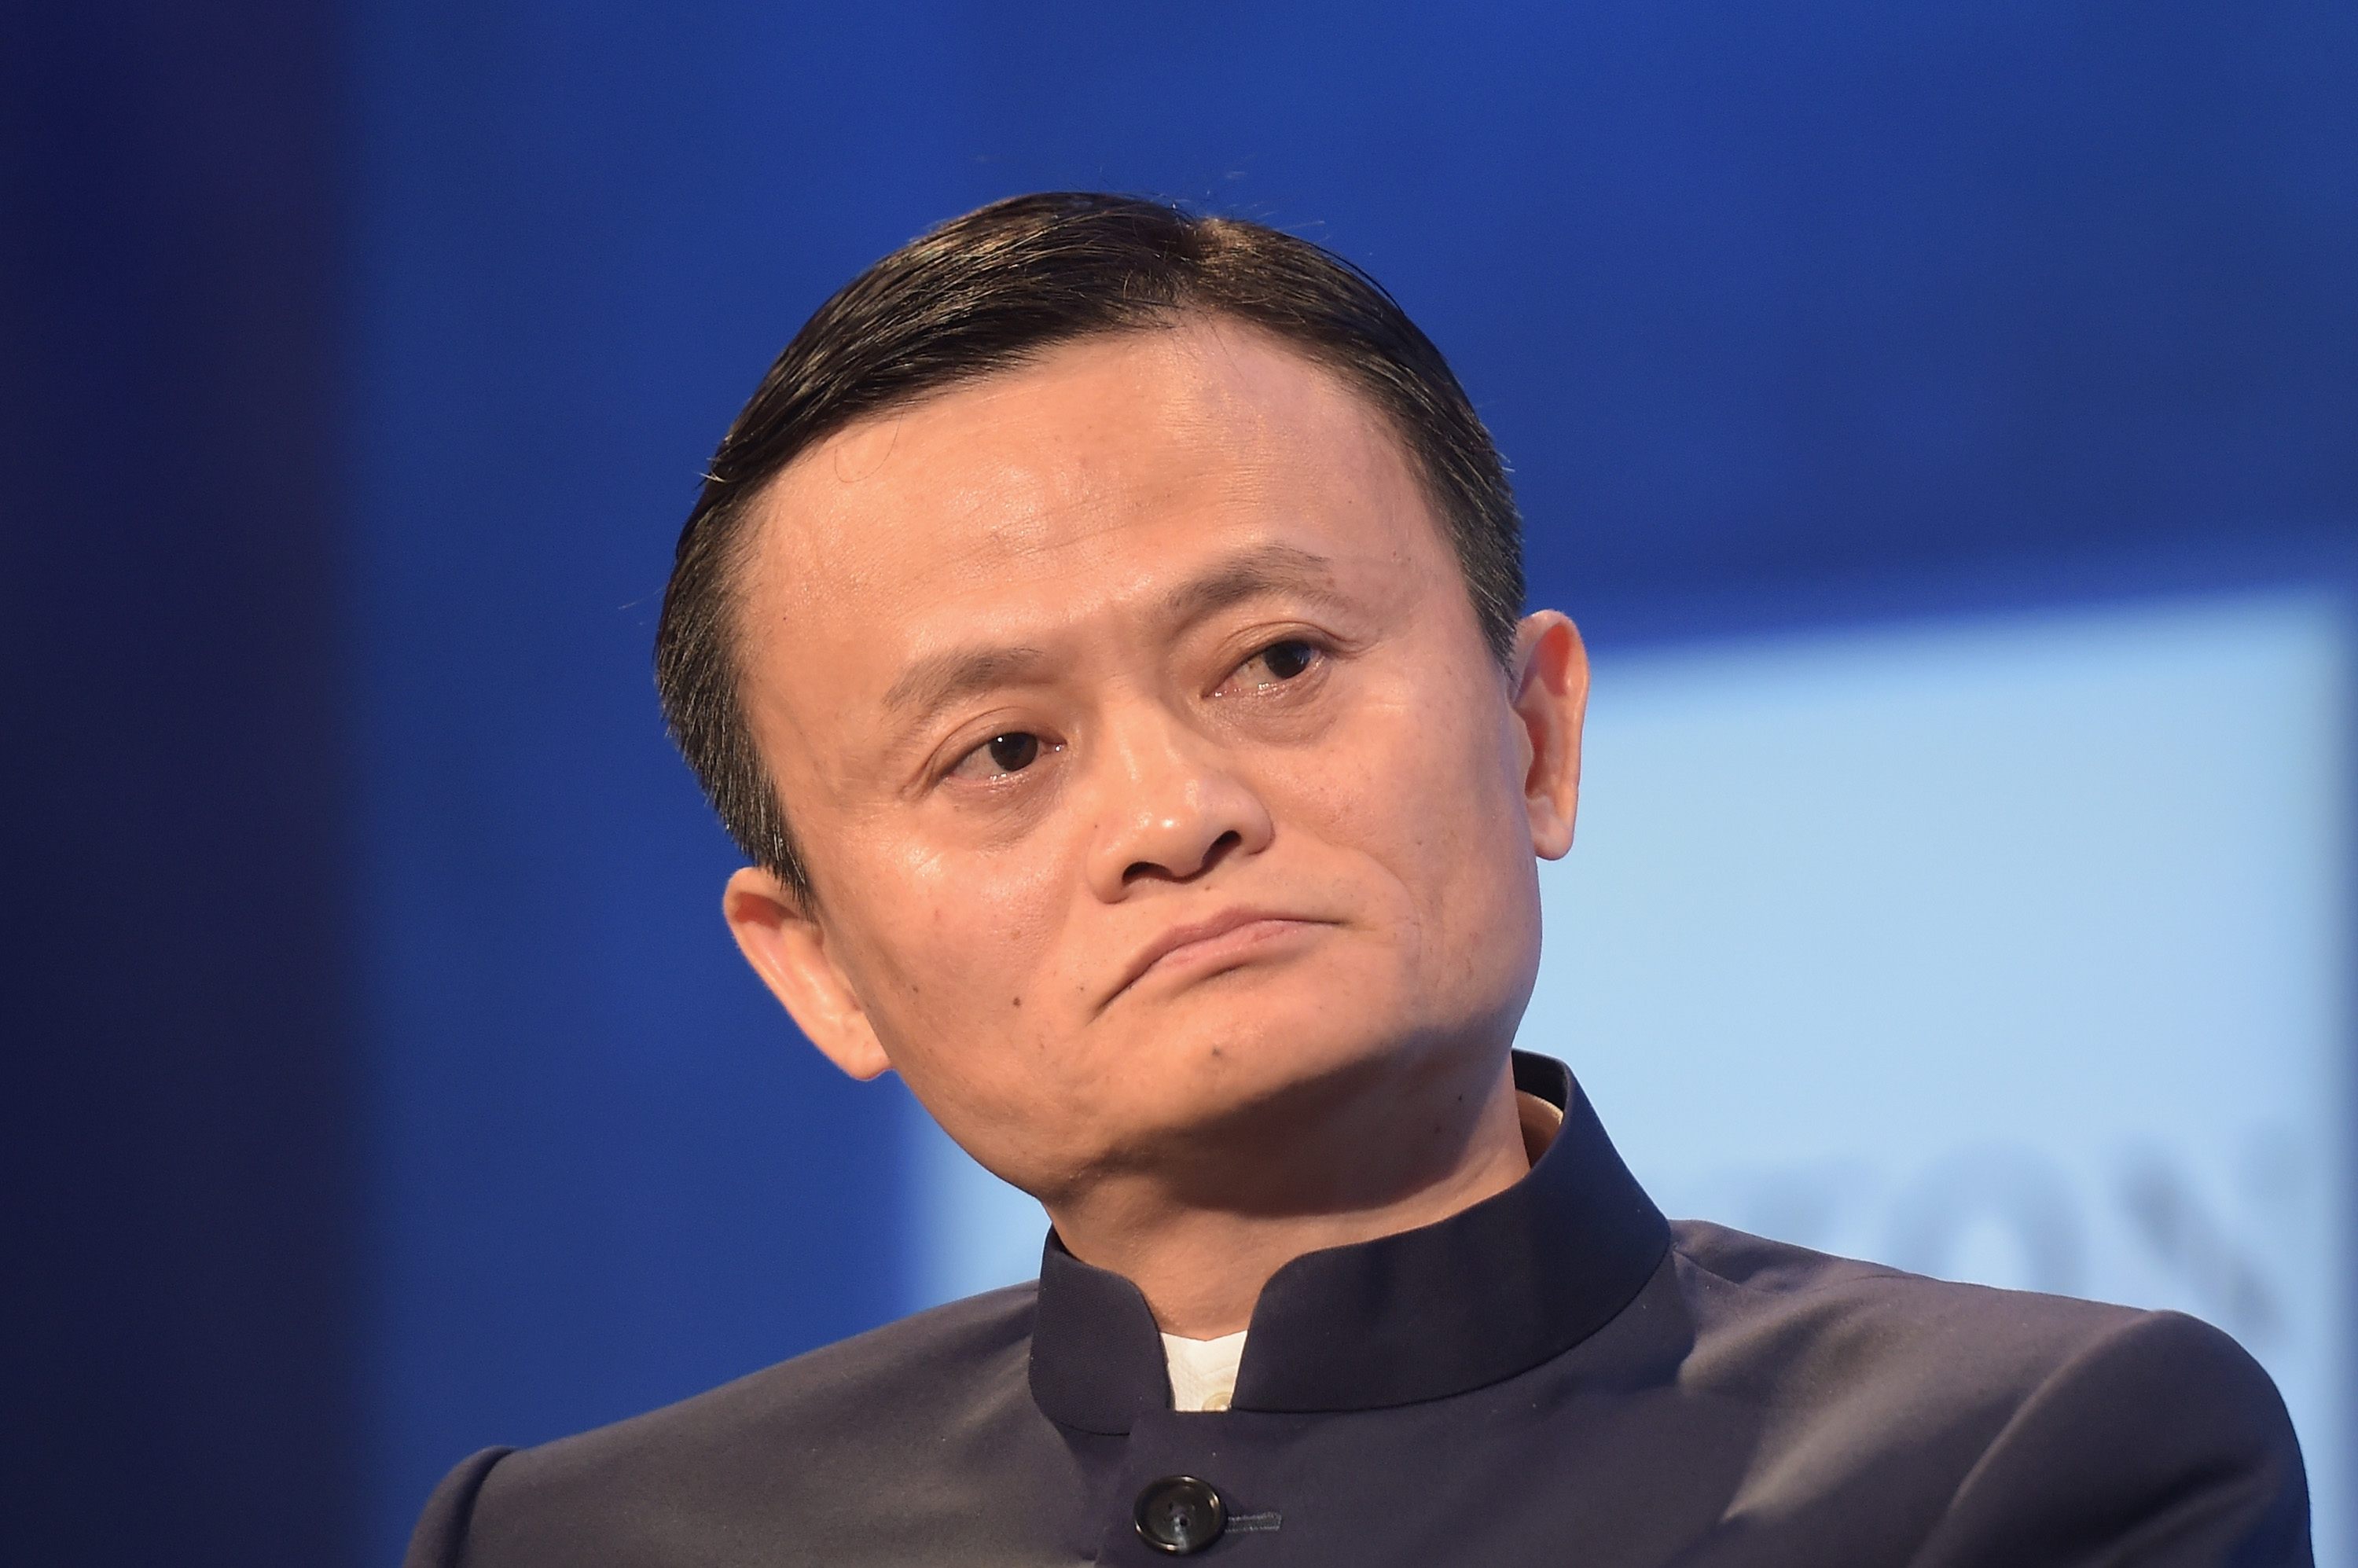 Jack Ma Alibaba Is Still Growing Despite China S Slowing Economy Fortune Alibaba ceo daniel zhang has described plans by chinese regulators to tighten restrictions on internet companies as timely and necessary.. https fortune com 2015 09 24 alibaba jack ma